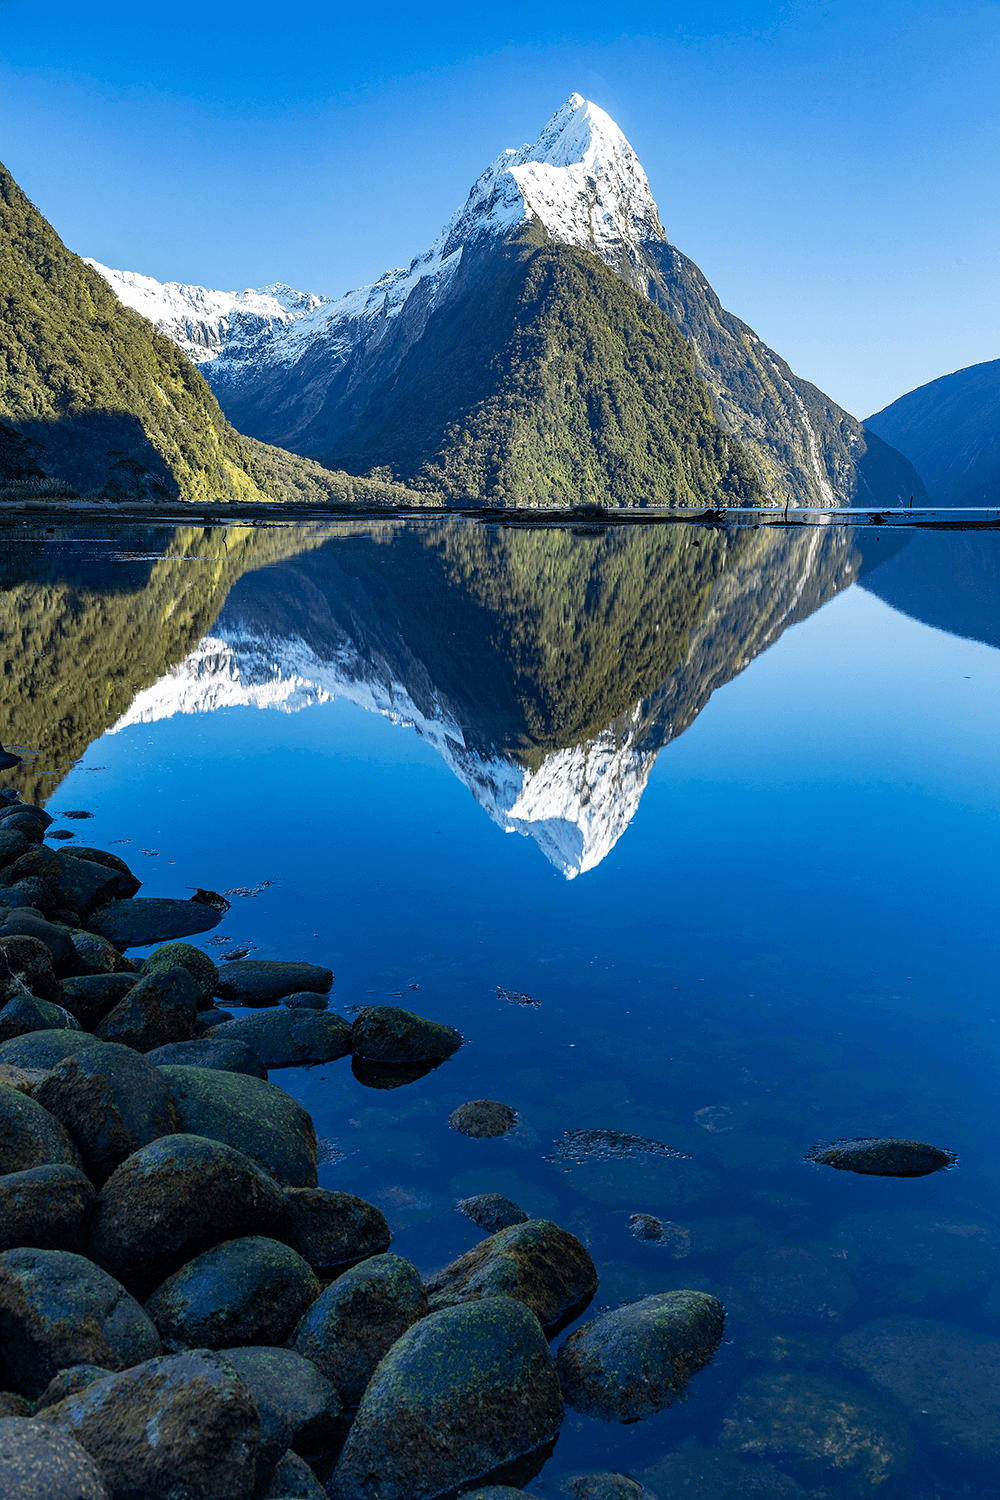 Image of New Zealand mountains by @Jamessmartphotography